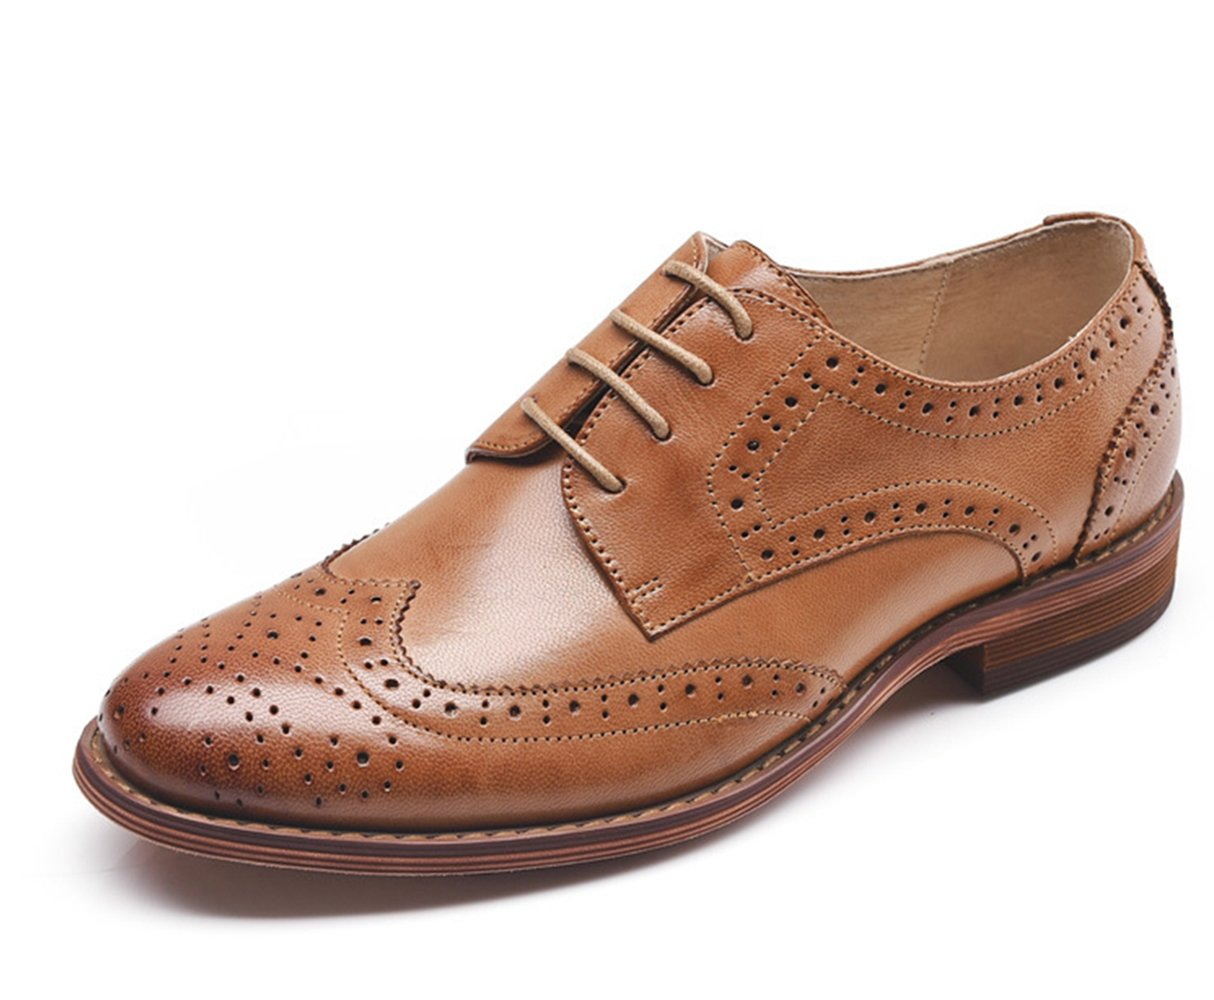 U-lite Women's Perforated Lace-up Wingtip Pure Color Leather Flat Oxfords Vintage Oxford Shoes Uliteoxford005-PP